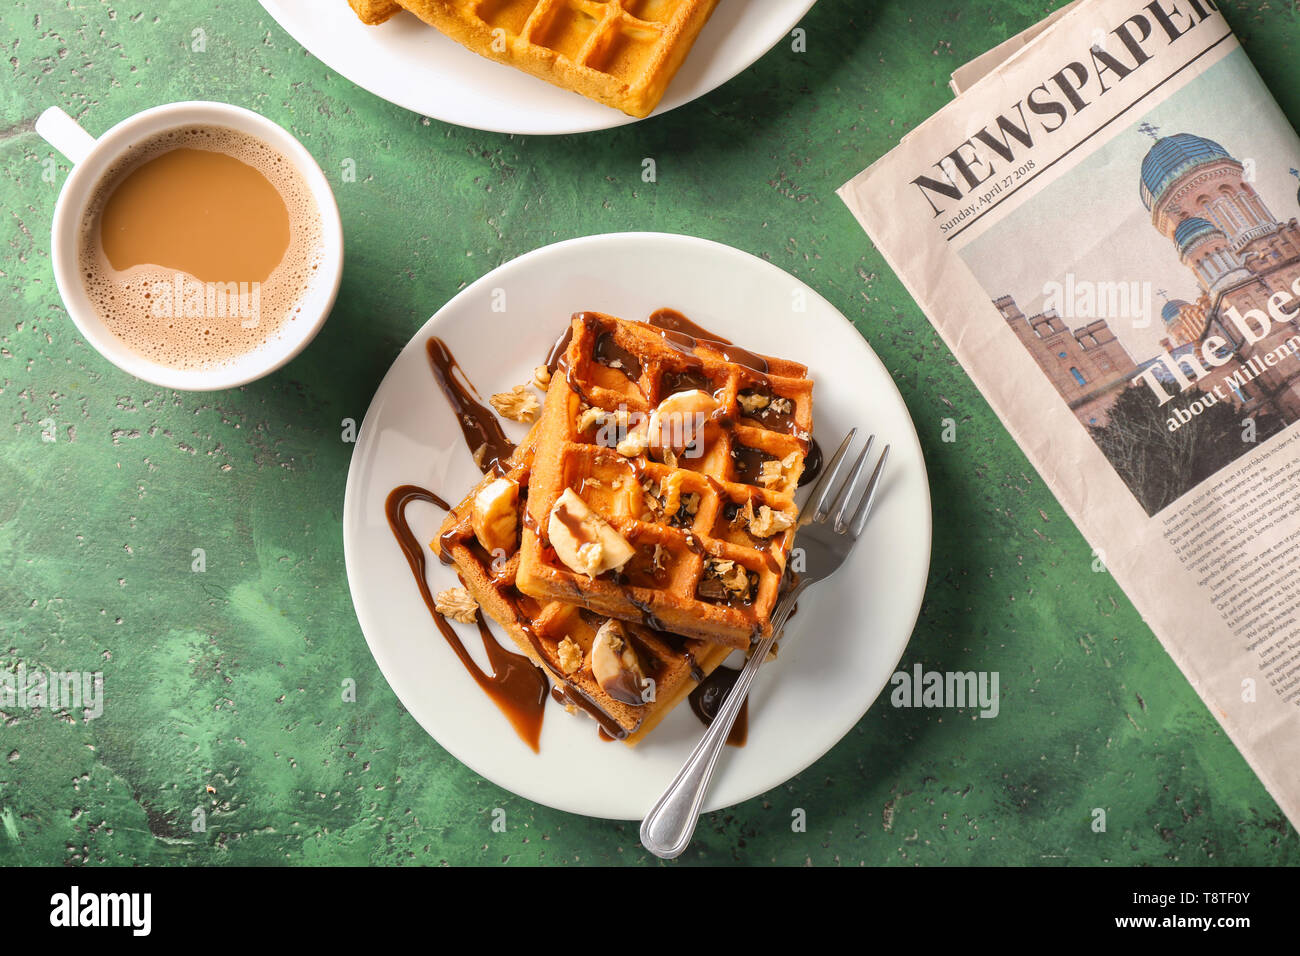 Delicious waffles with cup of coffee and newspaper on color table - Stock Image